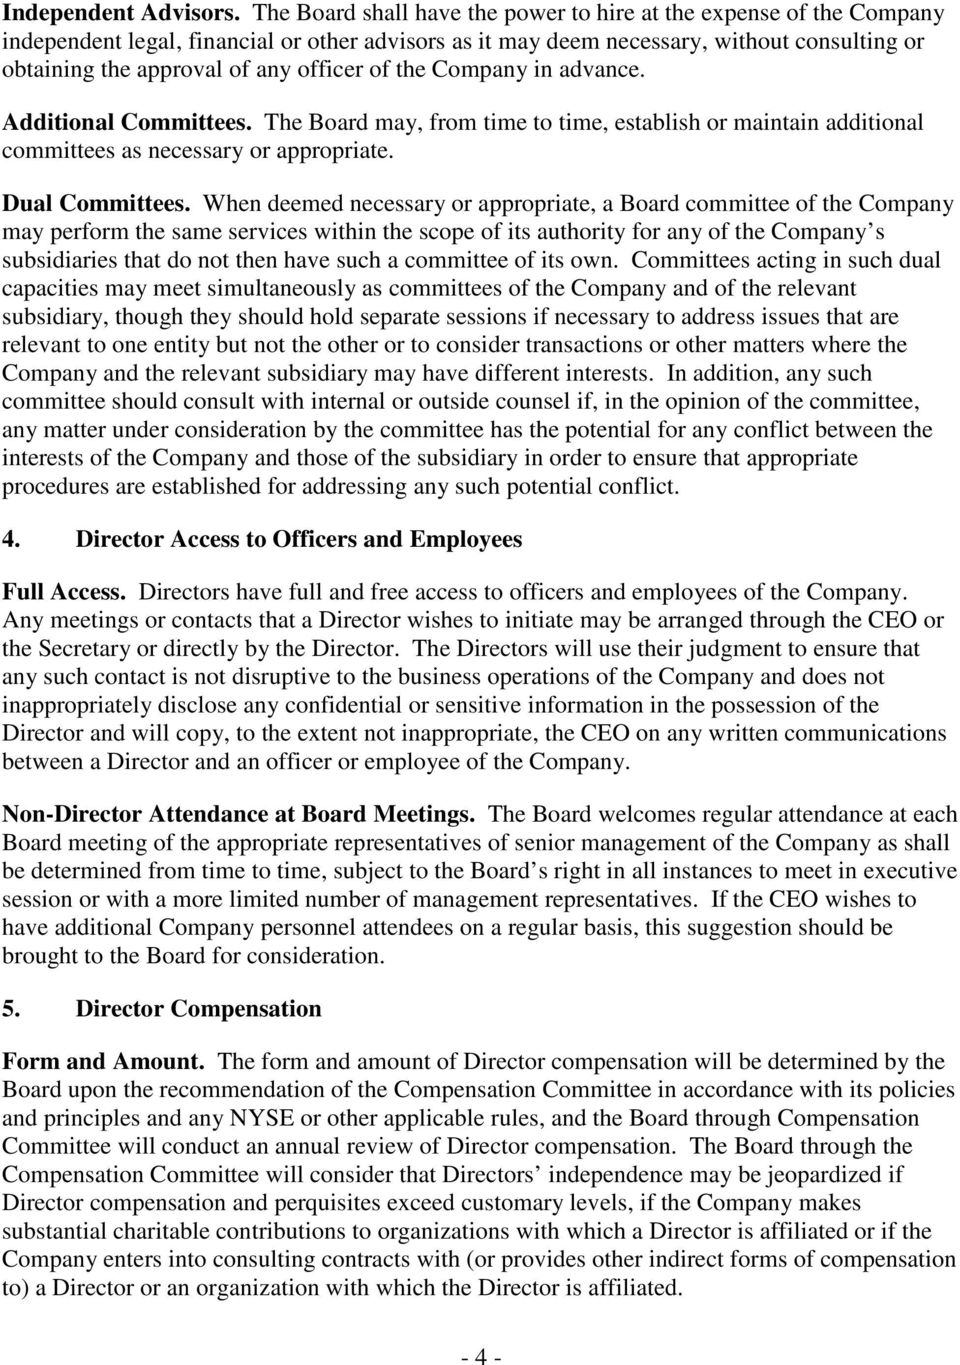 officer of the Company in advance. Additional Committees. The Board may, from time to time, establish or maintain additional committees as necessary or appropriate. Dual Committees.